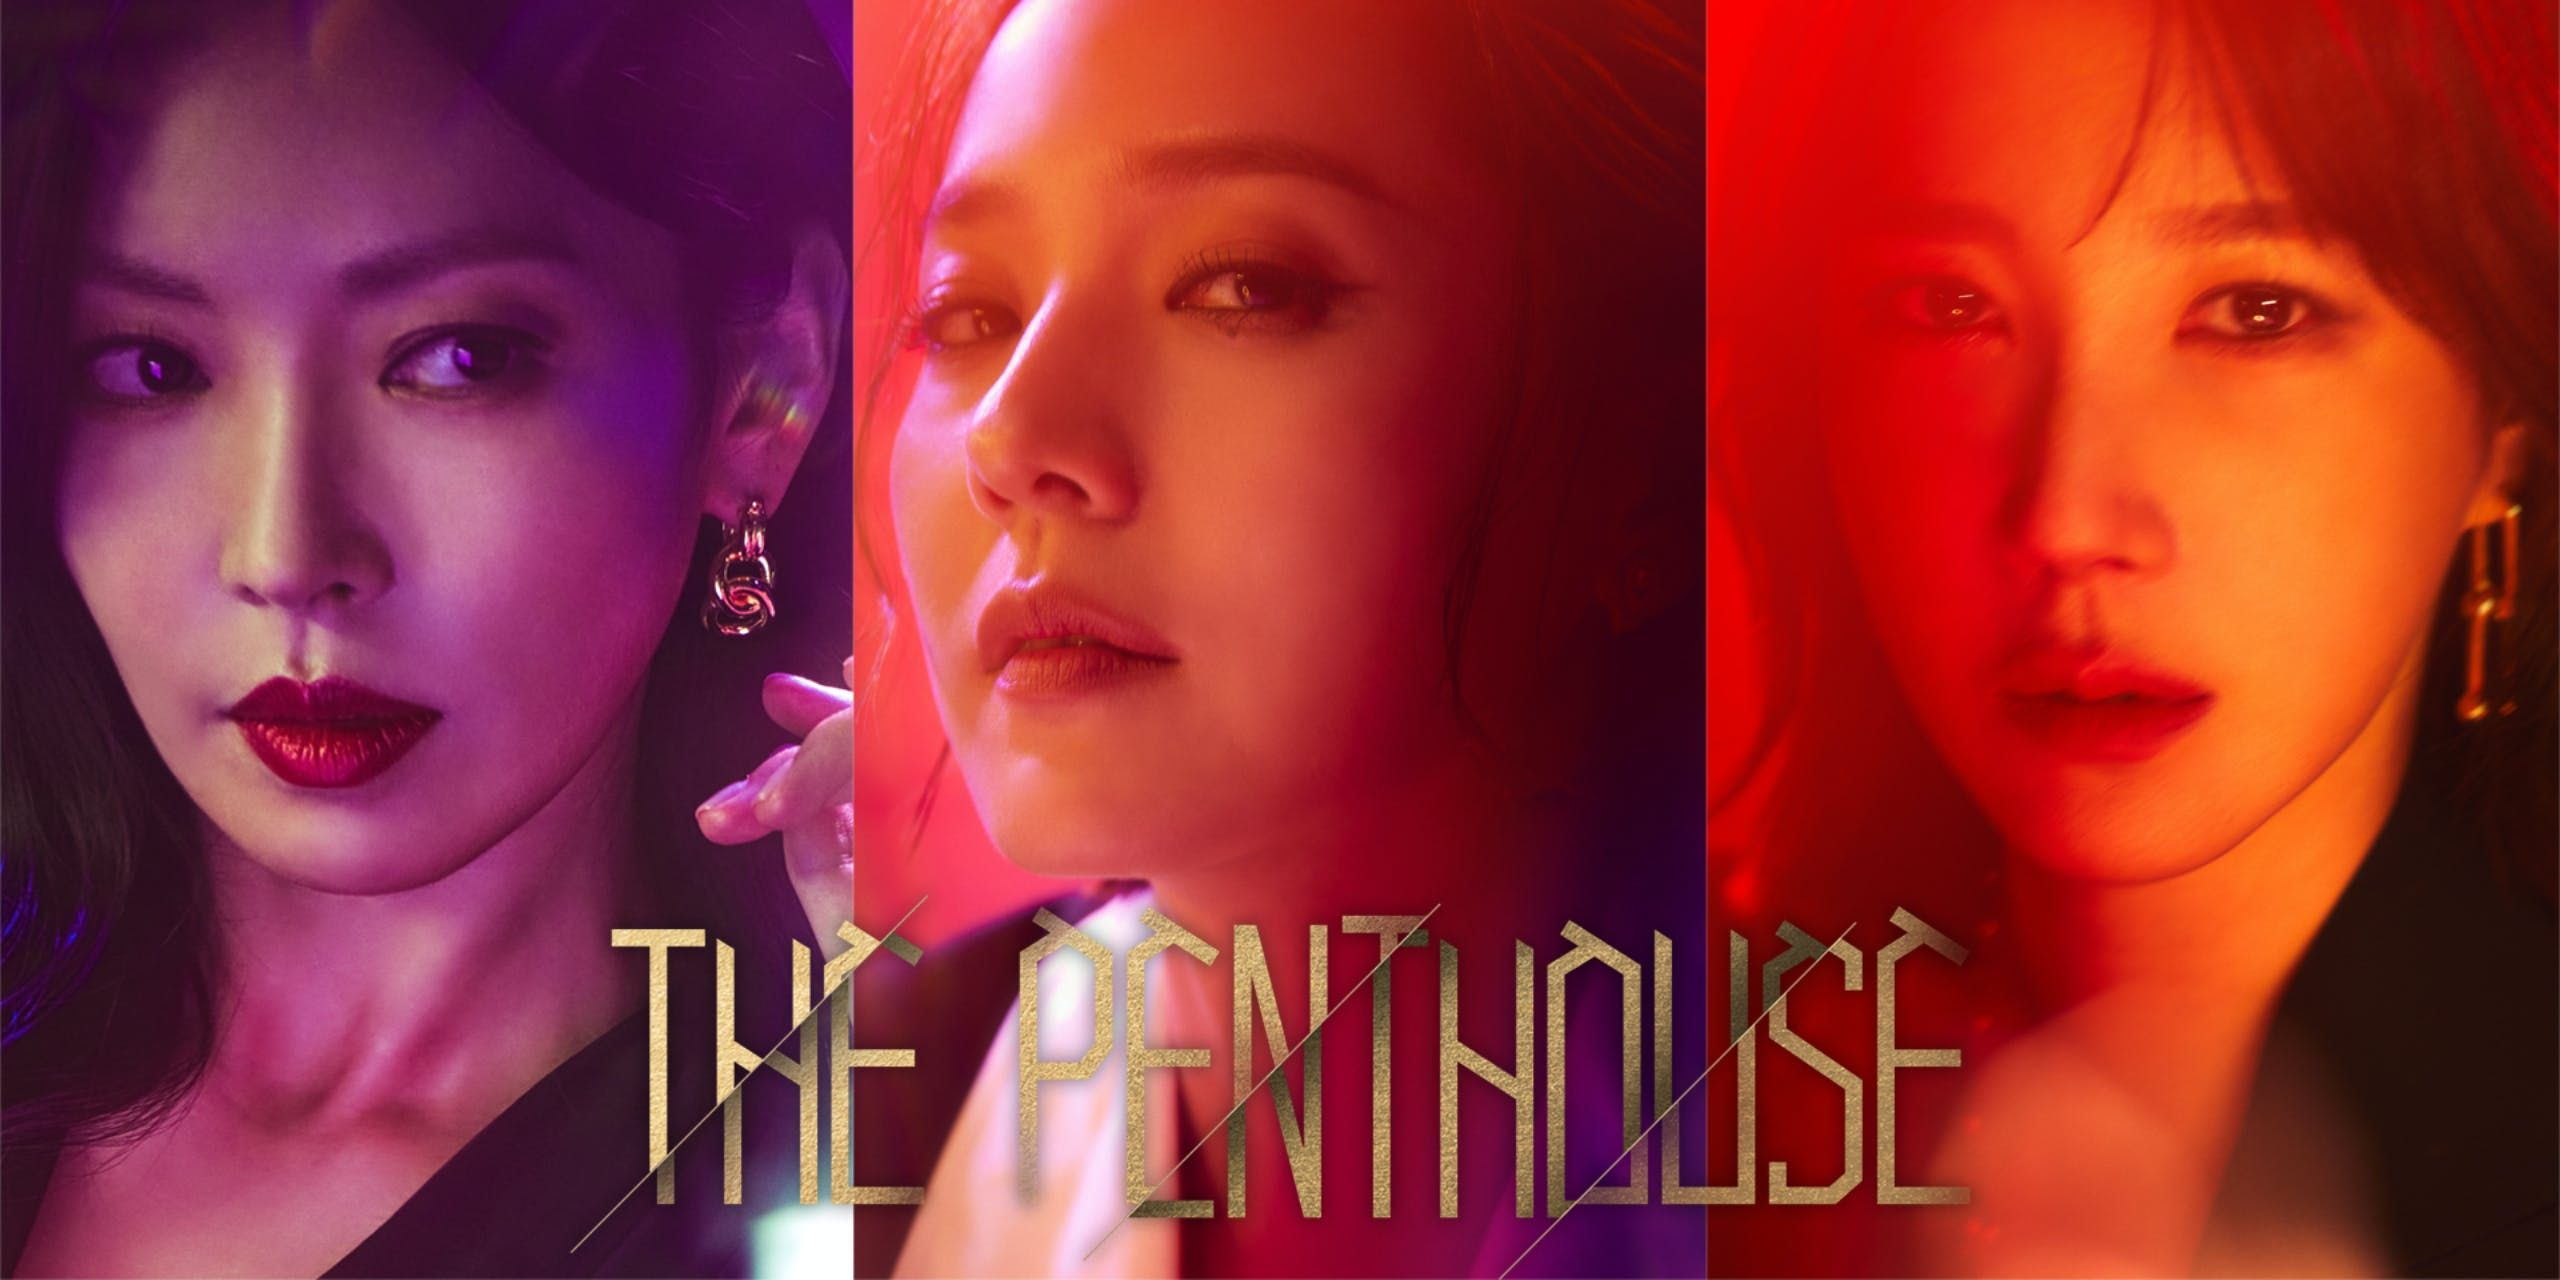 penthouse 2 episode 11 release date